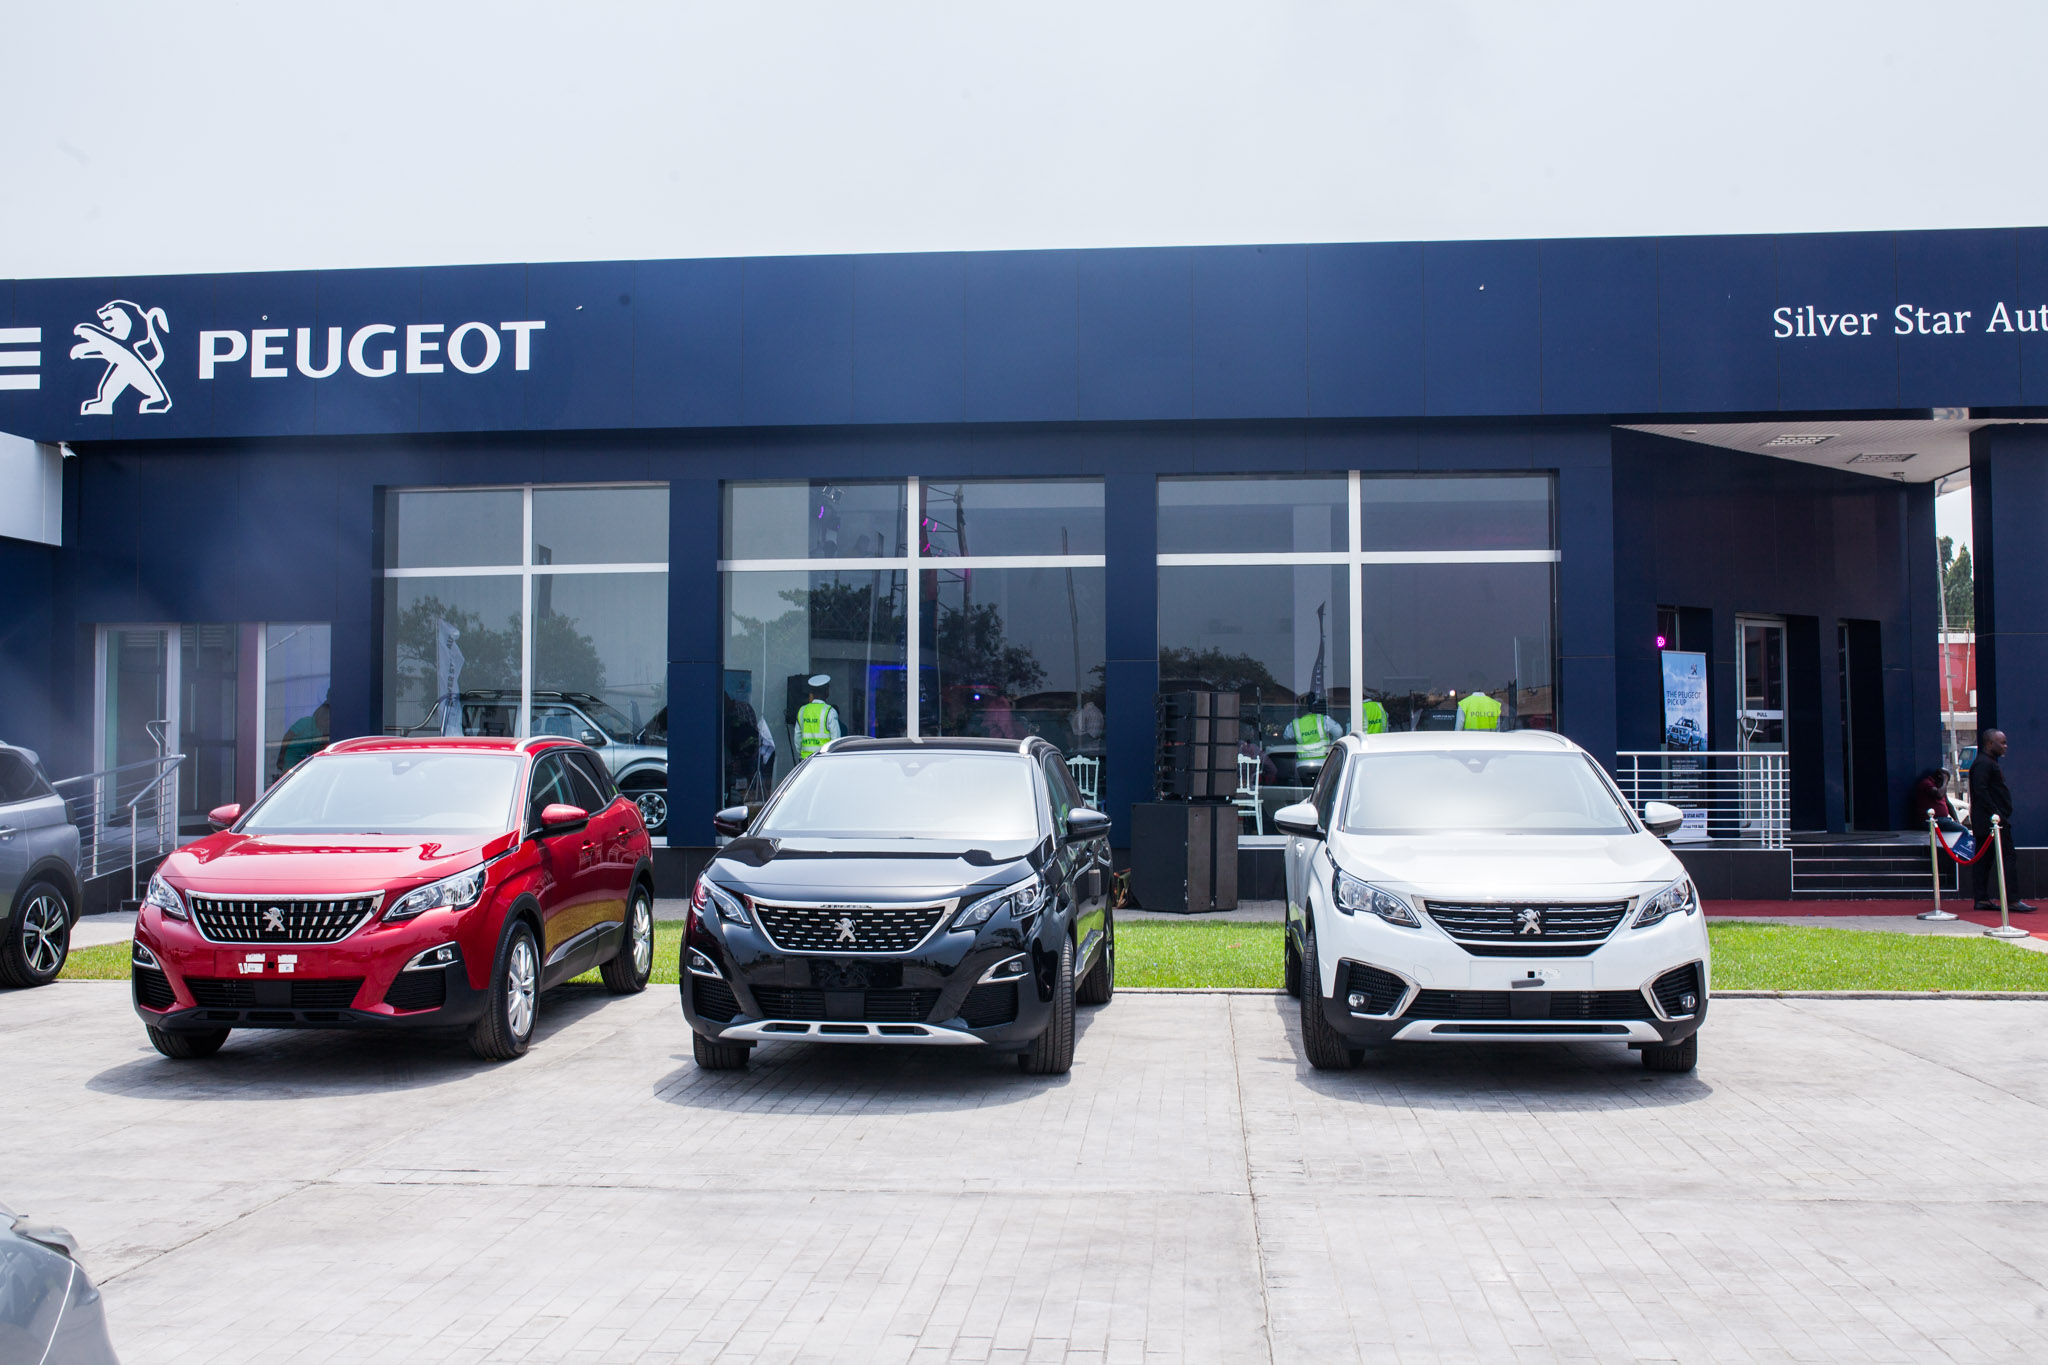 Silver Star Auto Launches Peugeot And Citroen Range Of Vehicles As Exclusive Distributor In Ghana